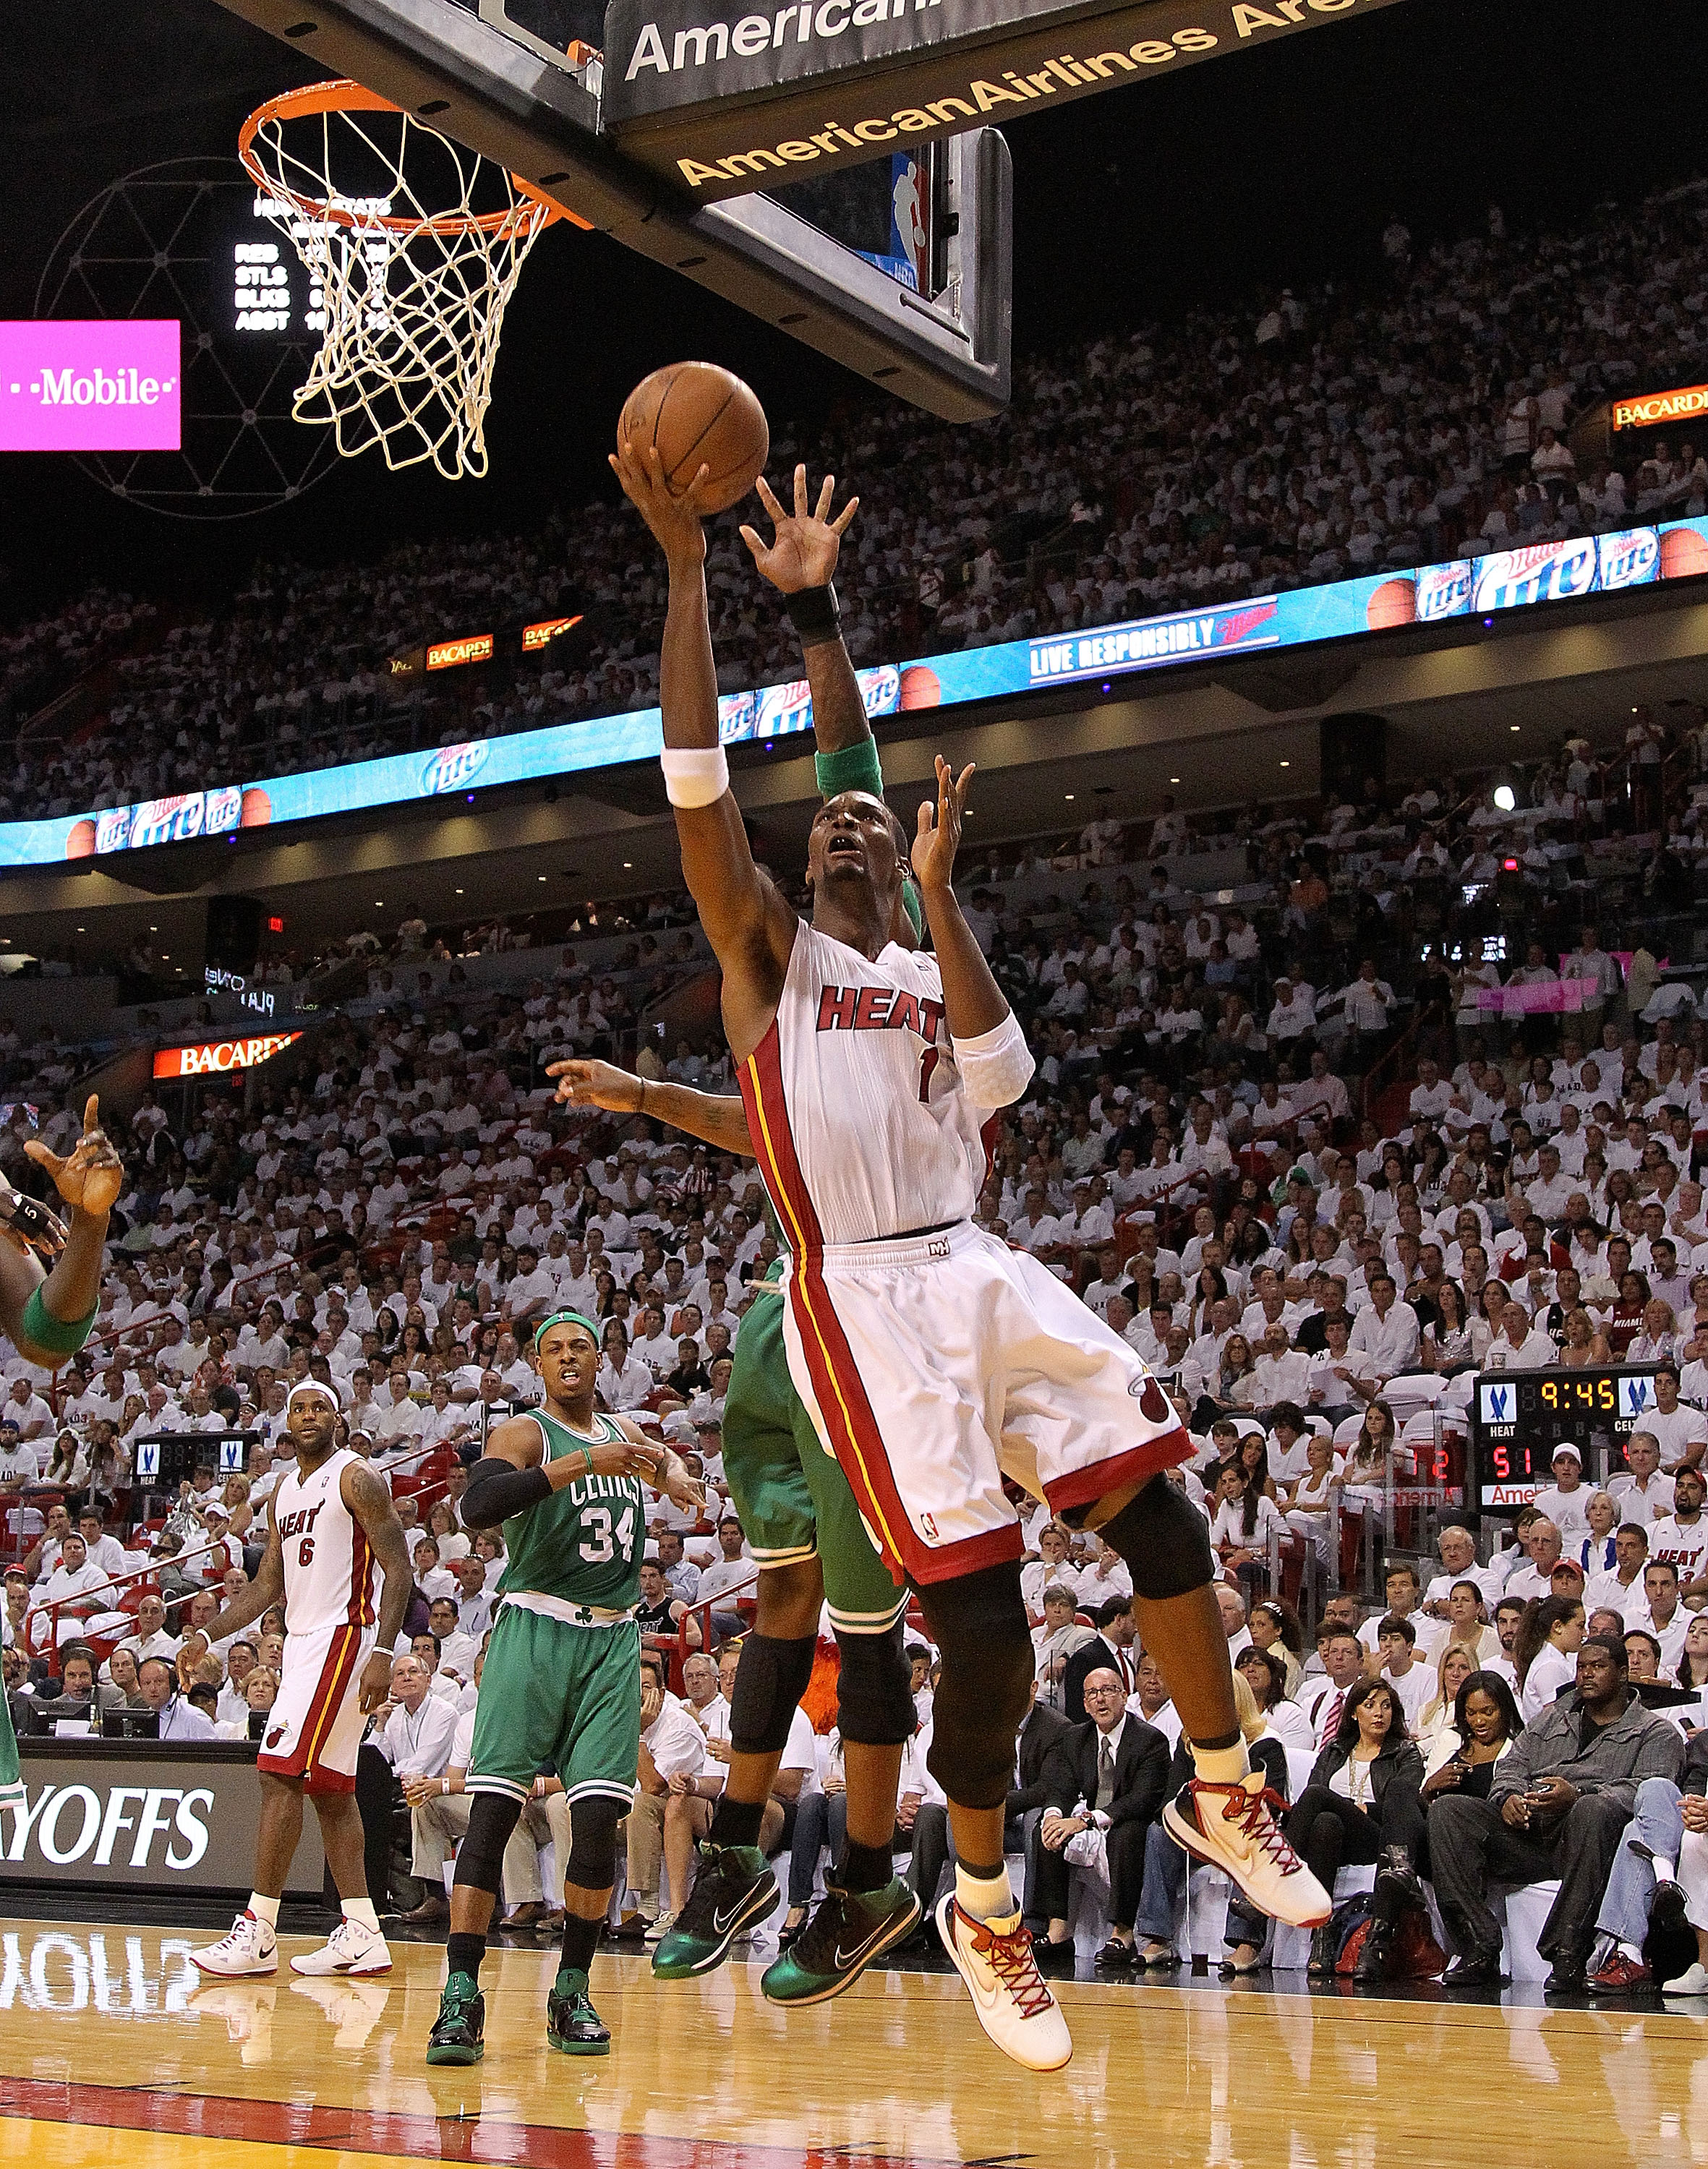 MIAMI, FL - MAY 03: Chris Bosh #1 of the Miami Heat takes a shot during Game Two of the Eastern Conference Semifinals of the 2011 NBA Playoffs against the Boston Celtics at American Airlines Arena on May 3, 2011 in Miami, Florida. NOTE TO USER: User expre